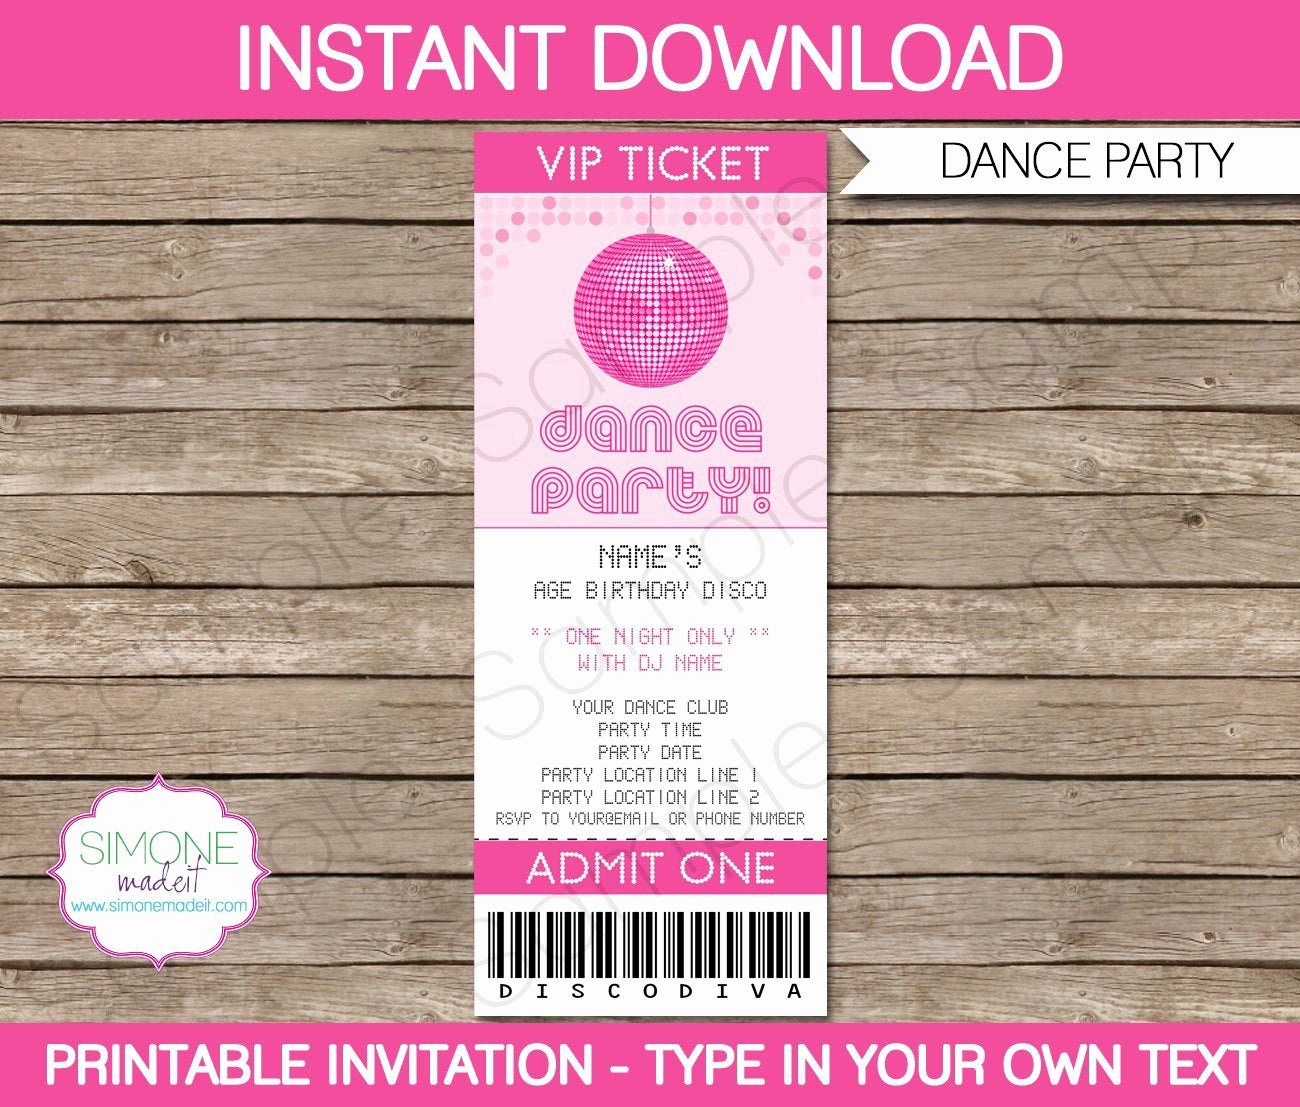 Dance Party Invitation Template Elegant Dance Party Ticket Invitation Template Birthday Party